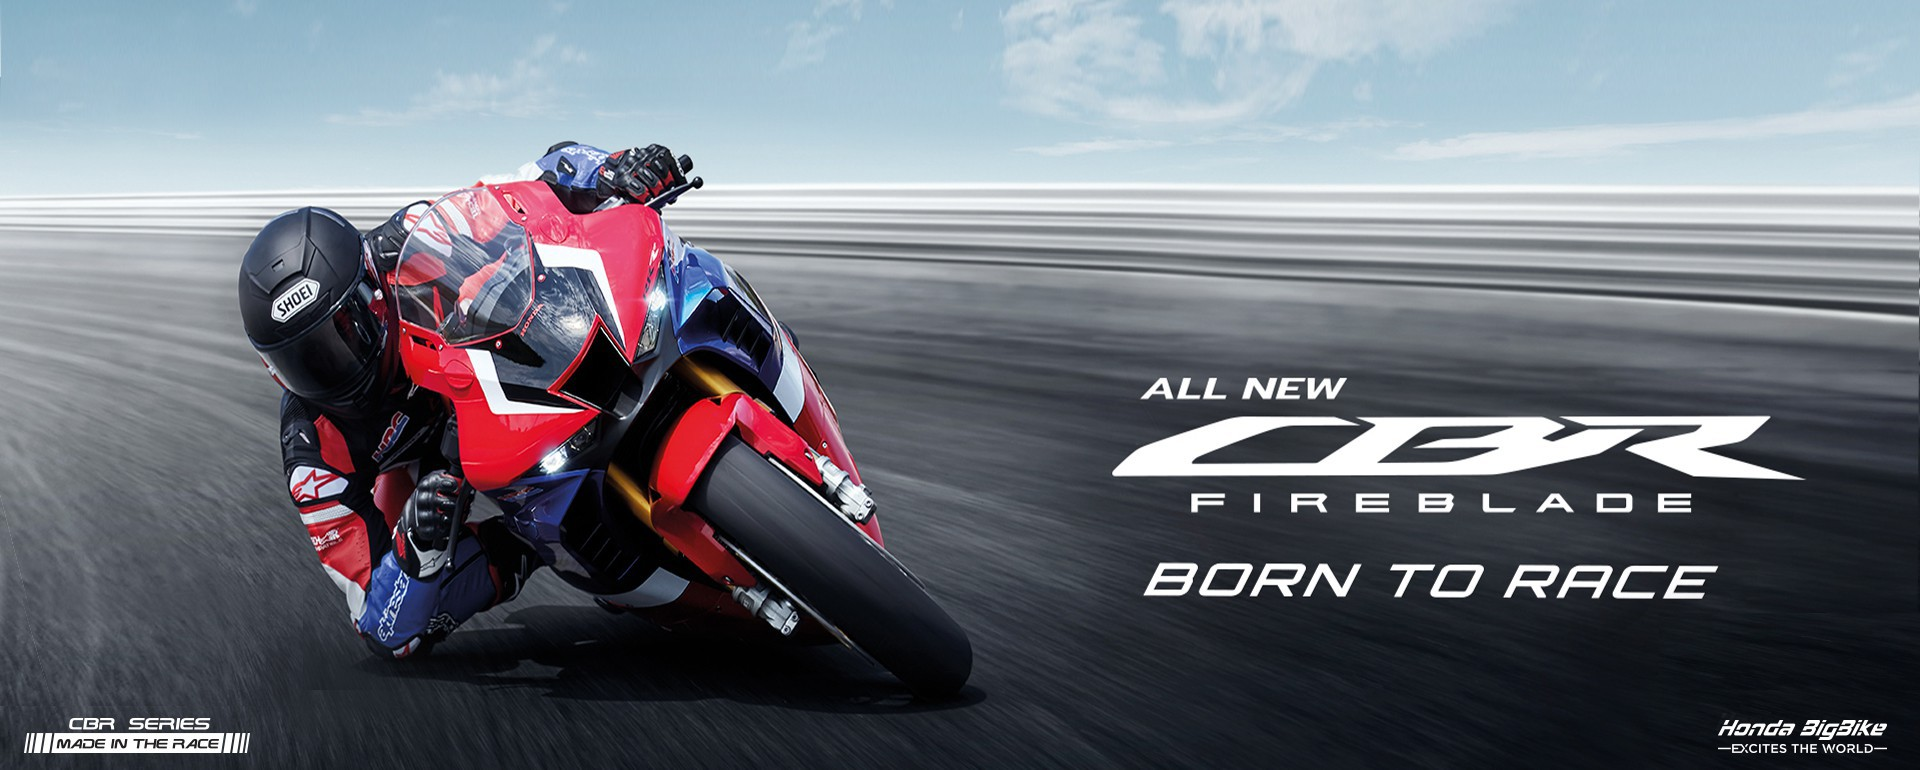 All New CBR1000RR-R FIREBLADE